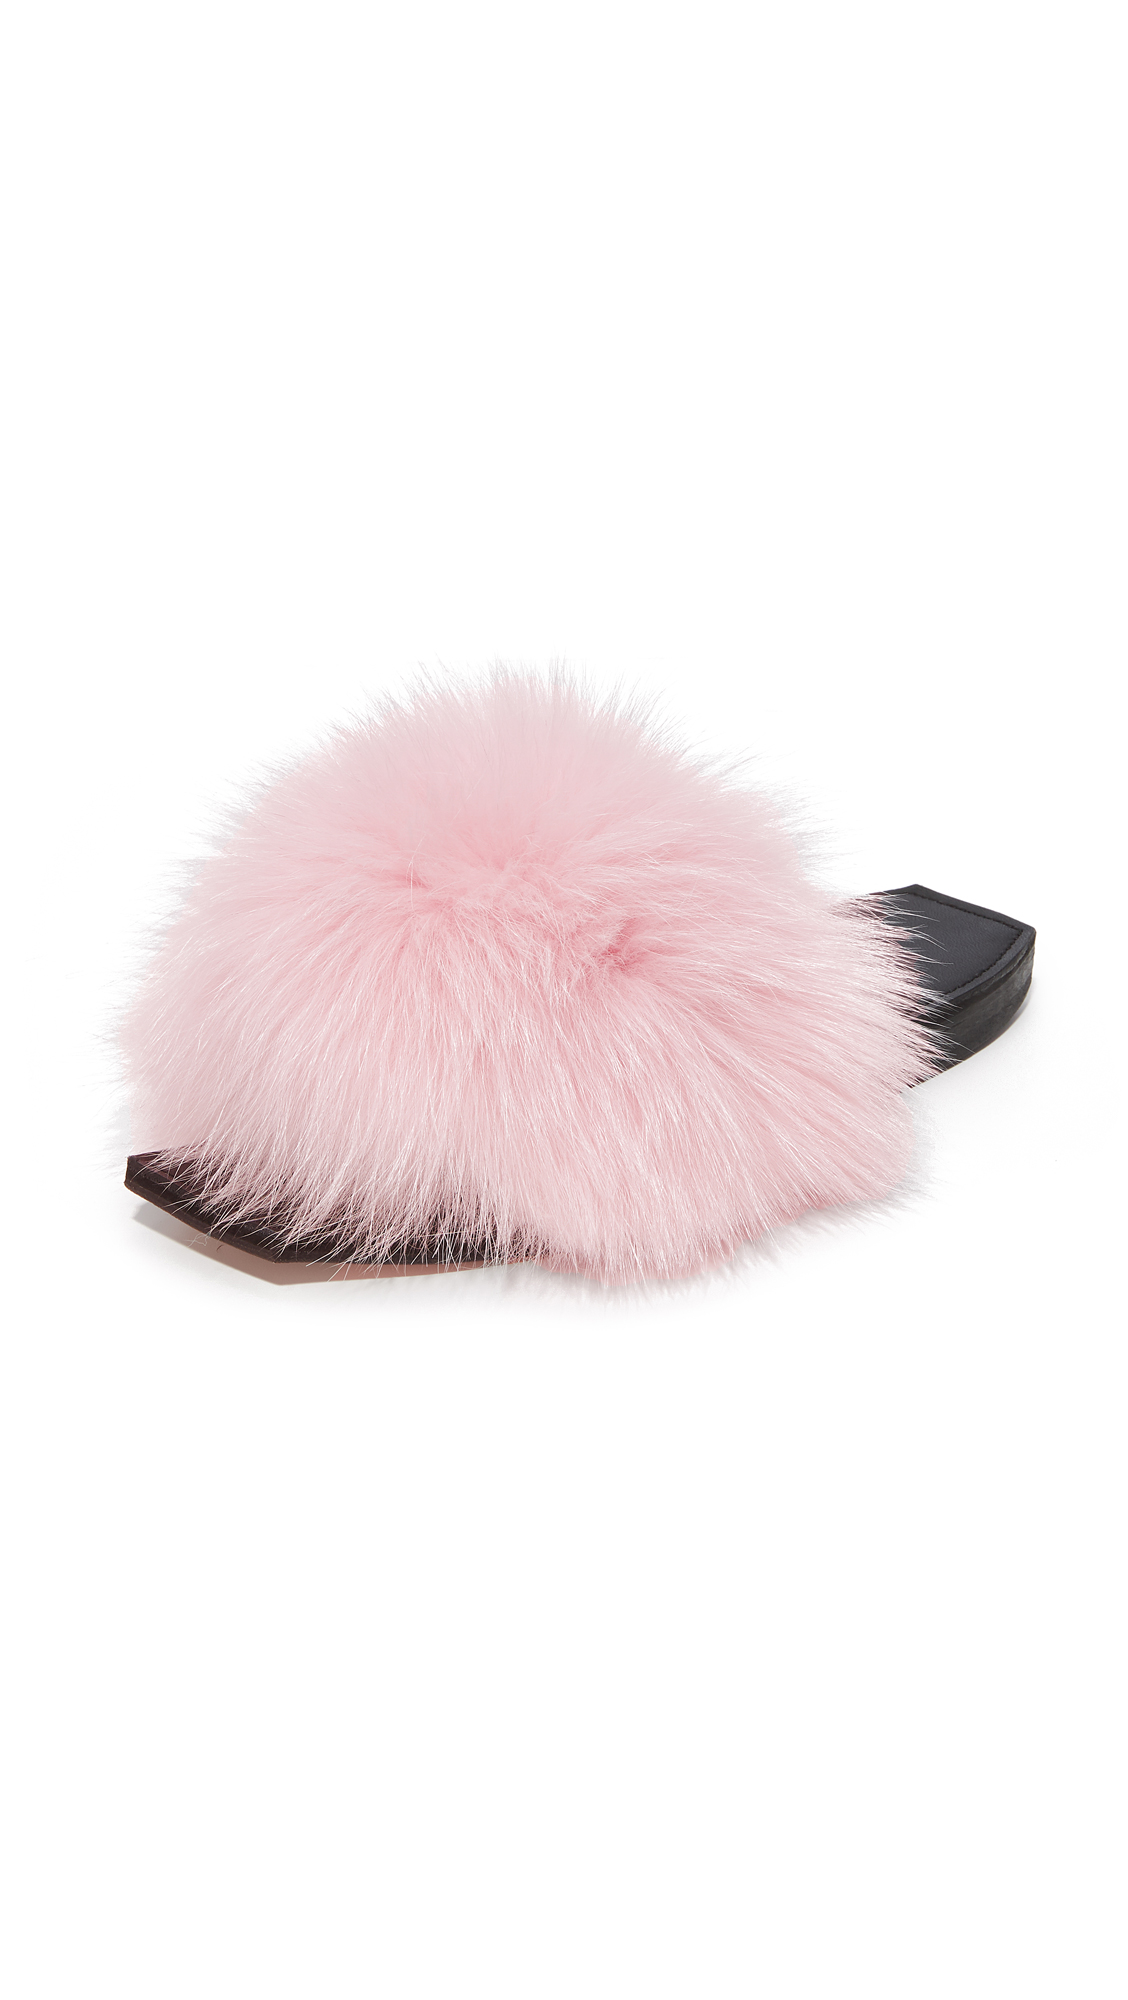 Parme Marin Furry Baby Slide - Pink Fur/Black